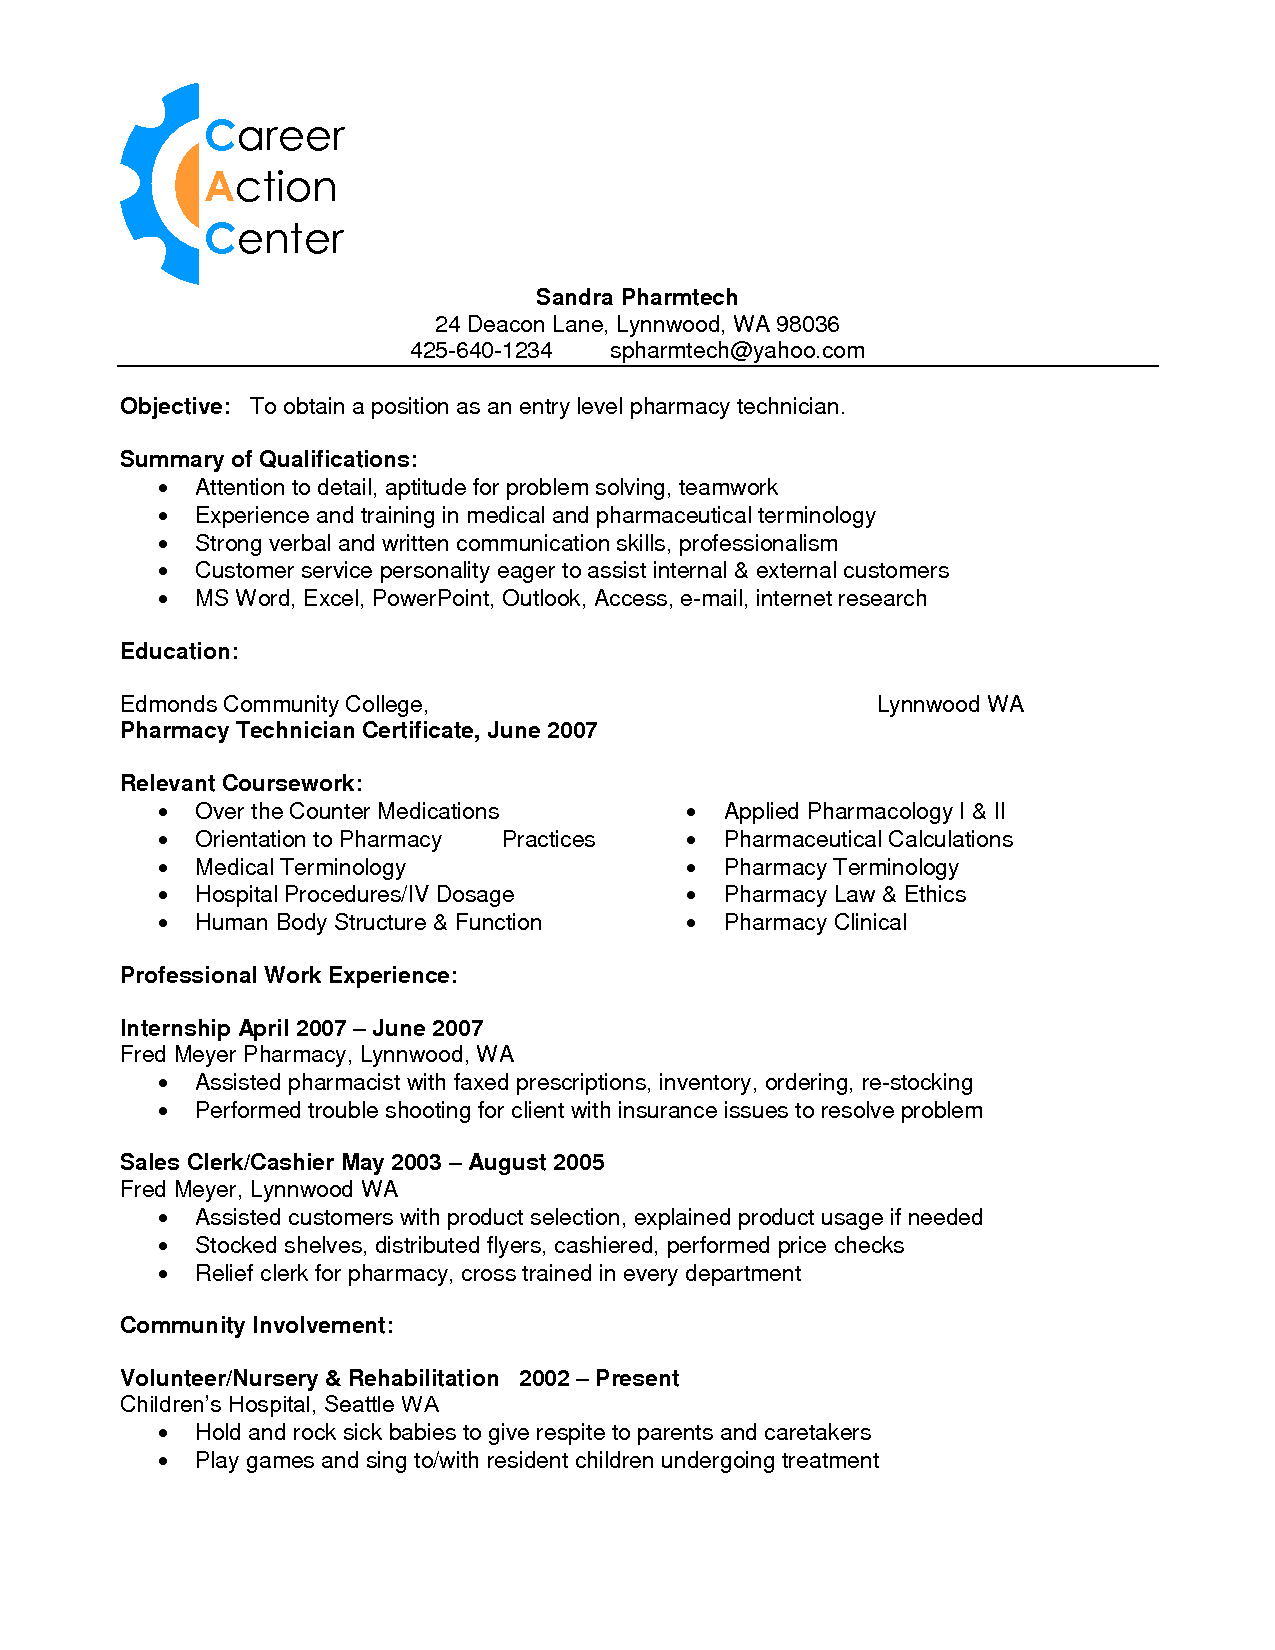 Sample Resume For Bank Teller At Entry Level Http Www